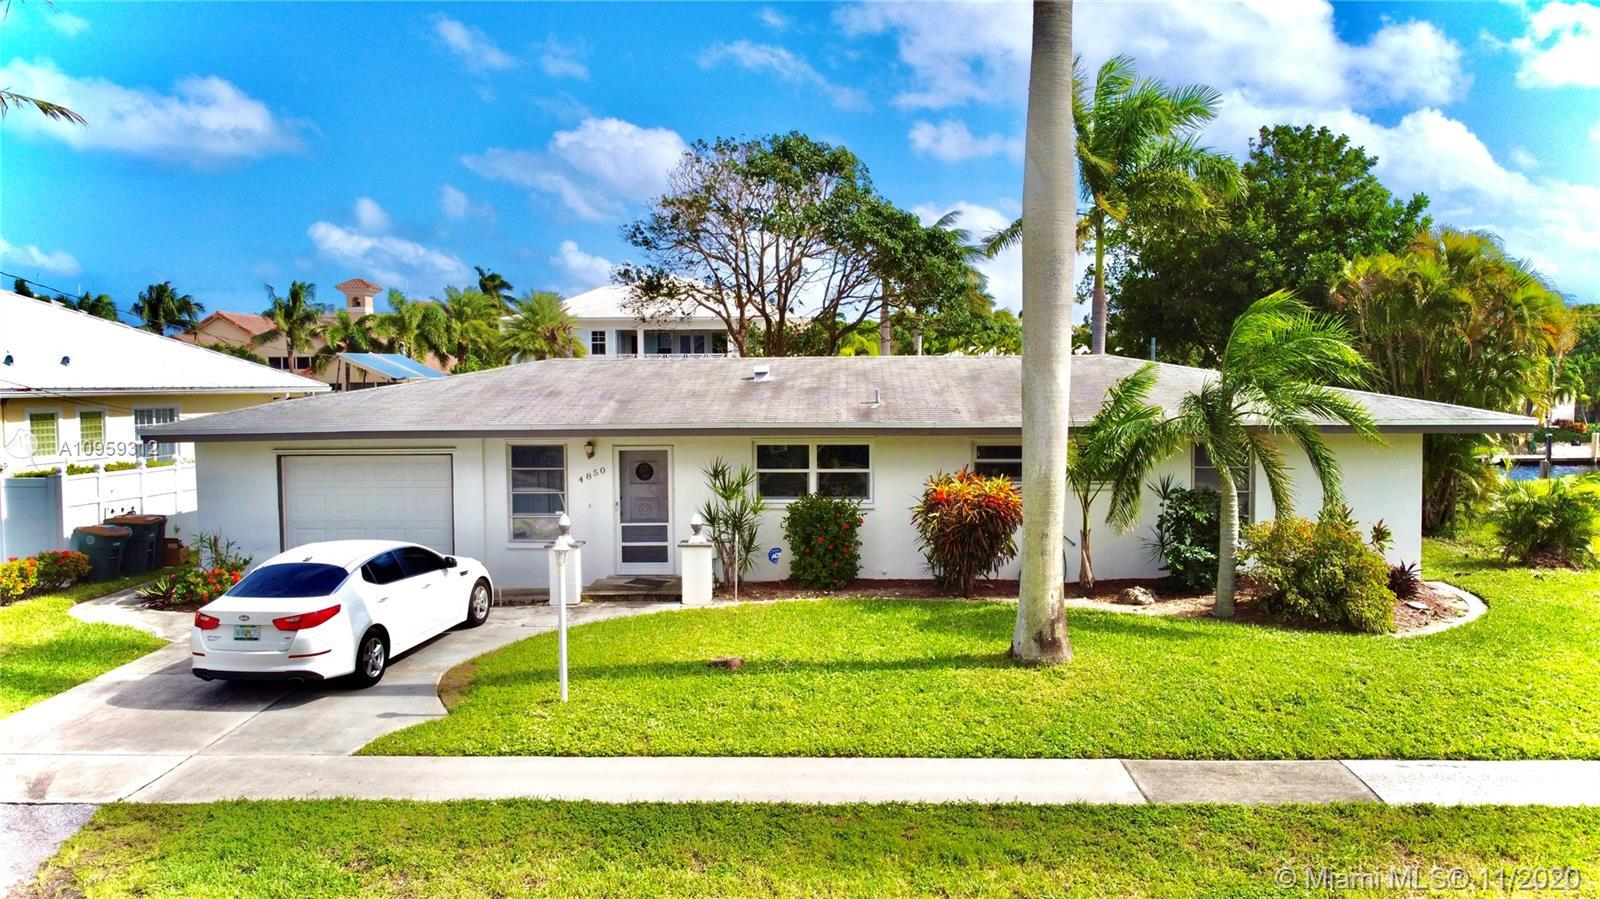 CHARMING WATERFRONT 3B/2B HOUSE IN PRESTIGIOUS CORAL KEY VILLAS OF LIGHTHOUSE POINT * OCEAN ACCESS W